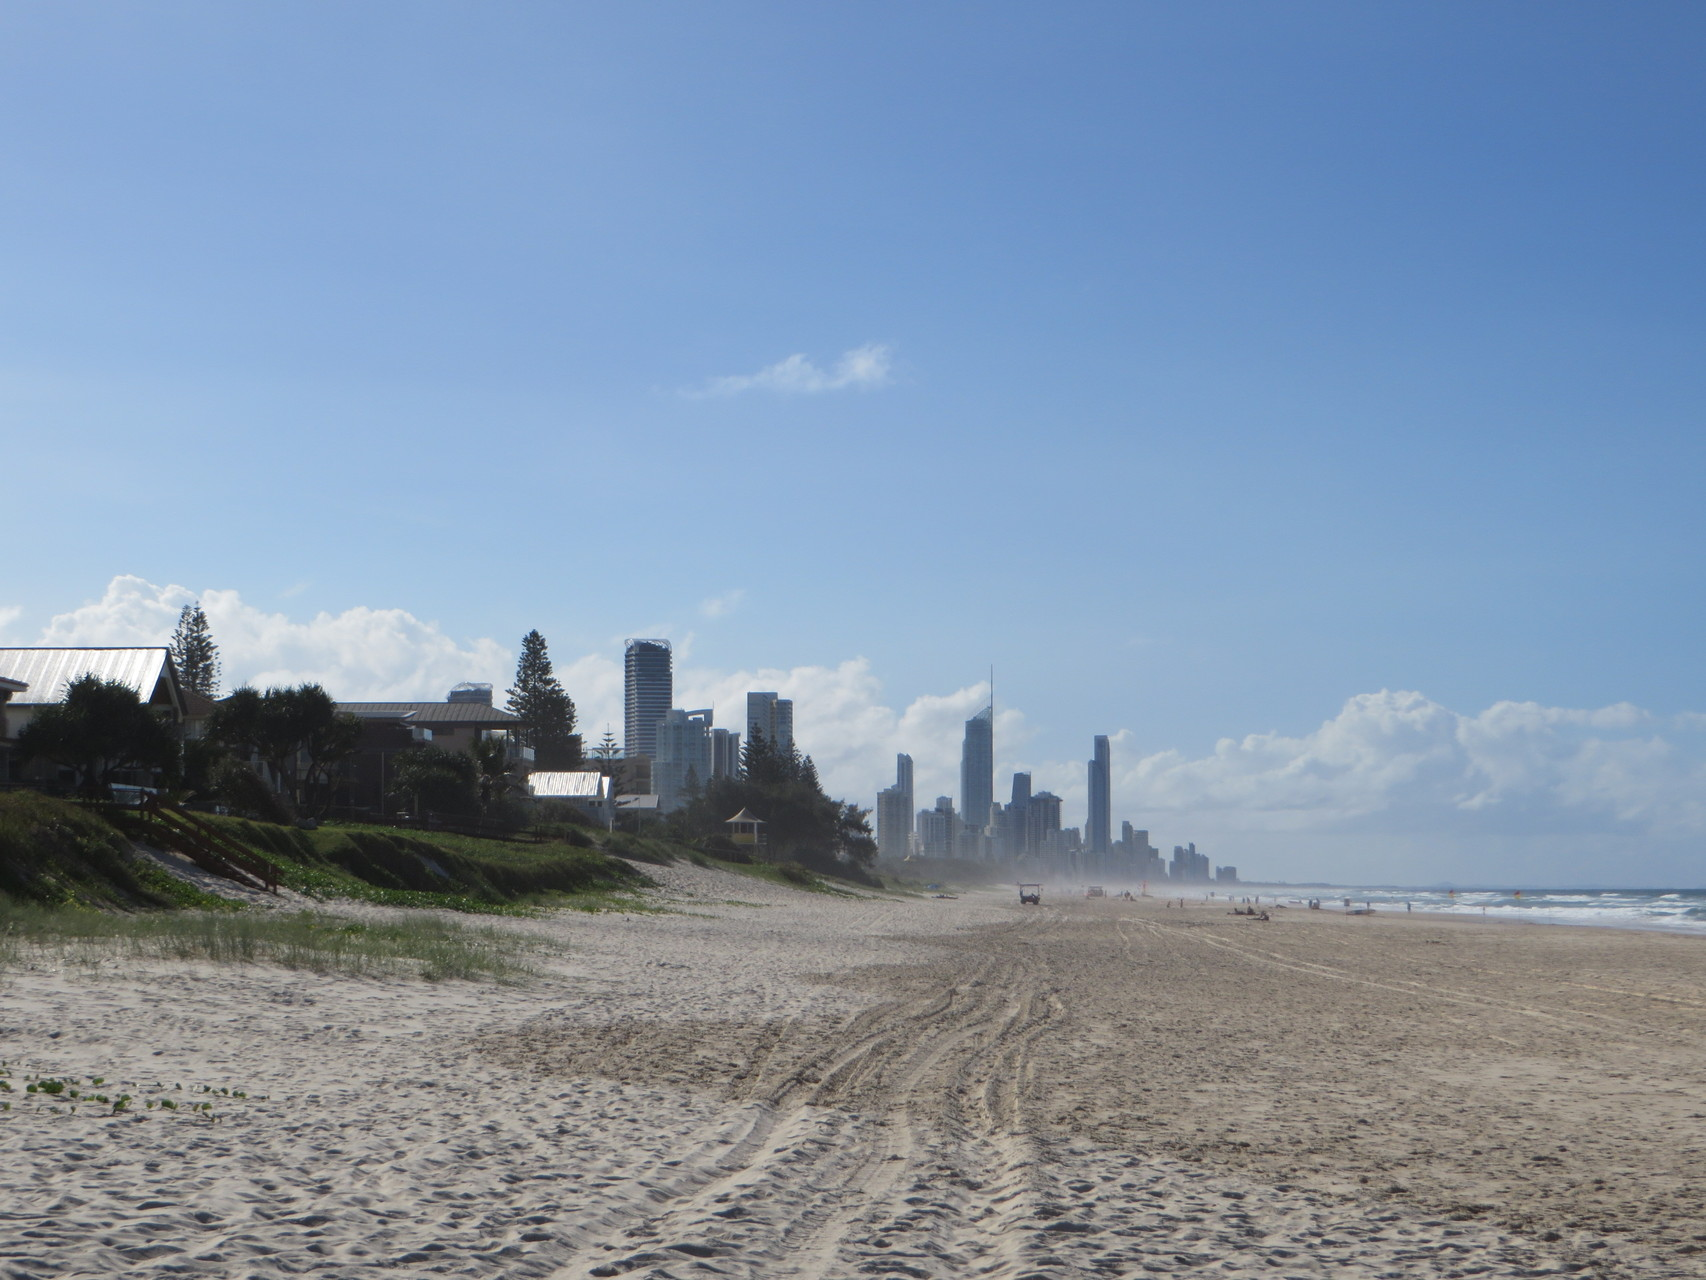 In weiter Ferne: Surfers Paradise.